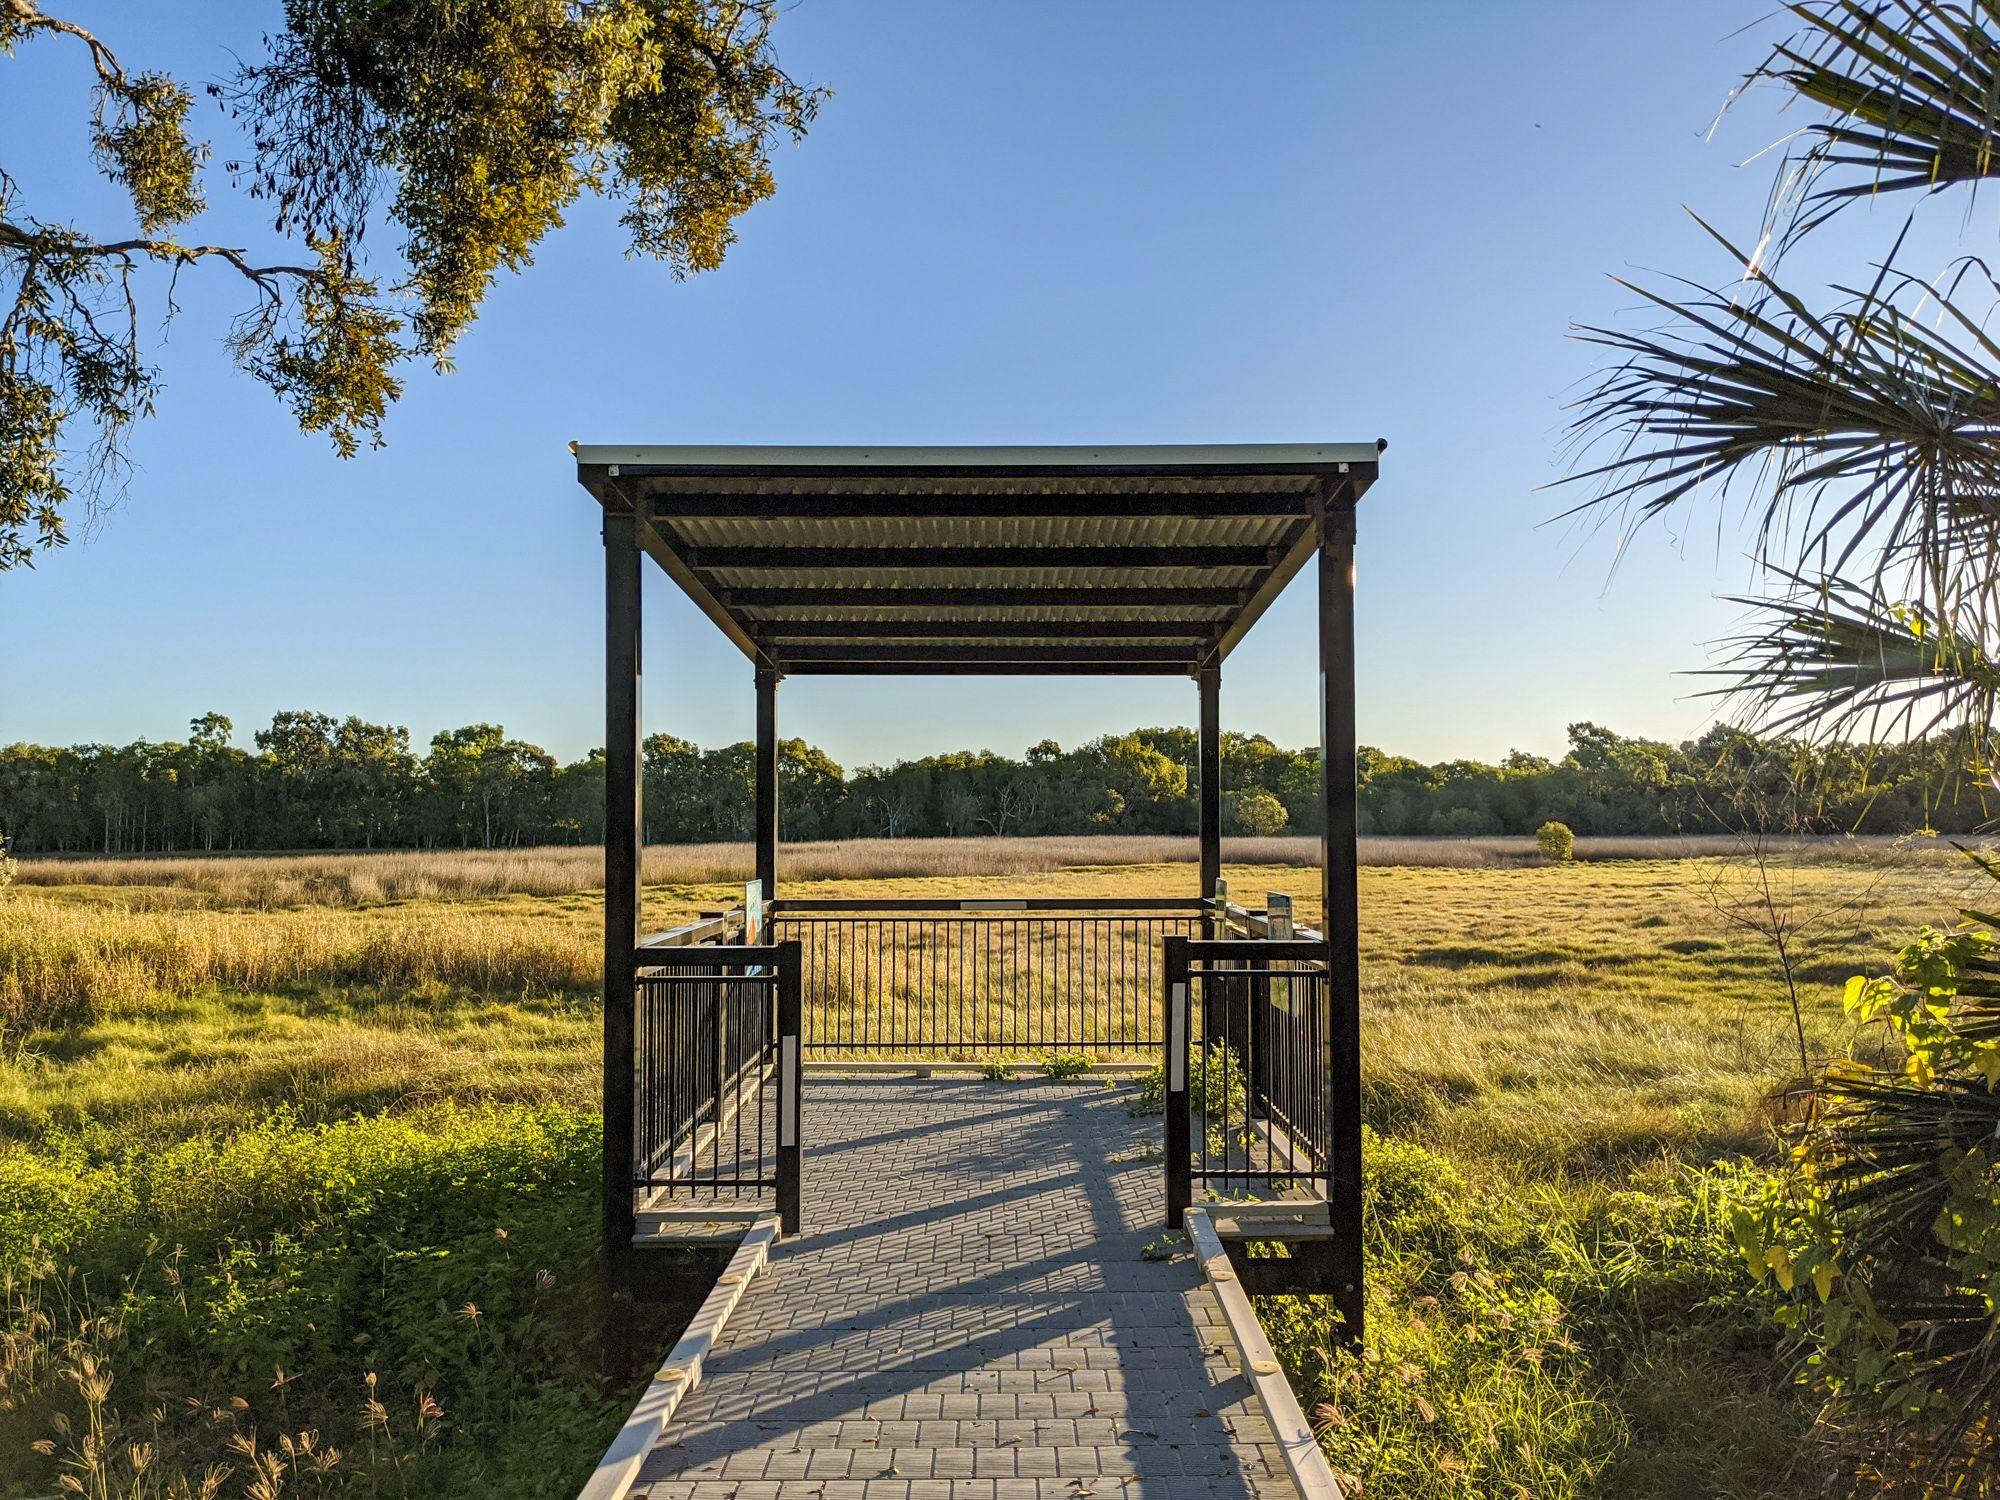 rowes bay wetlands boardwalk viewing shelter